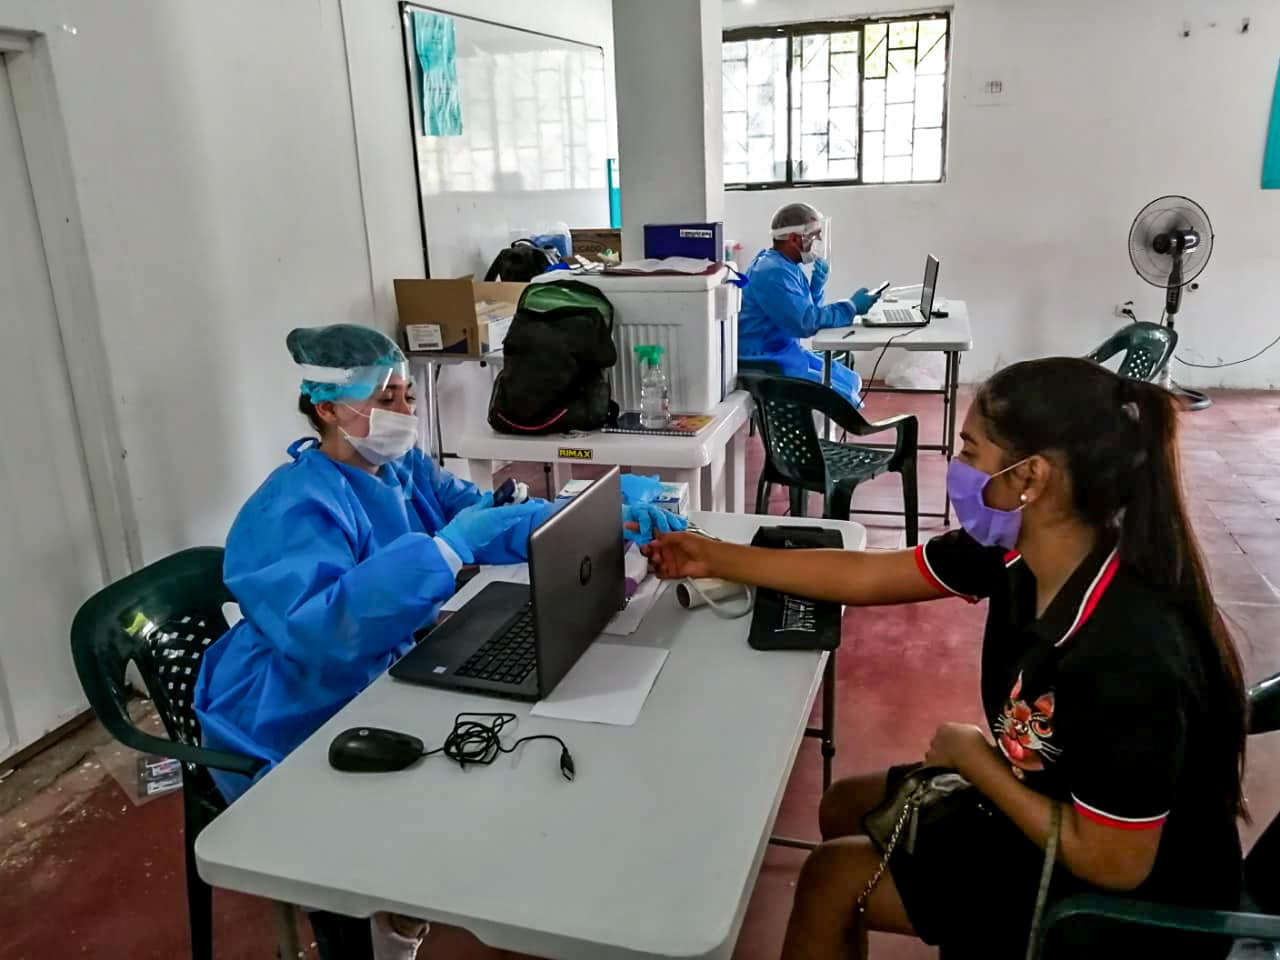 Head nurse interviewing patient sitting at a table in Colombia clinic